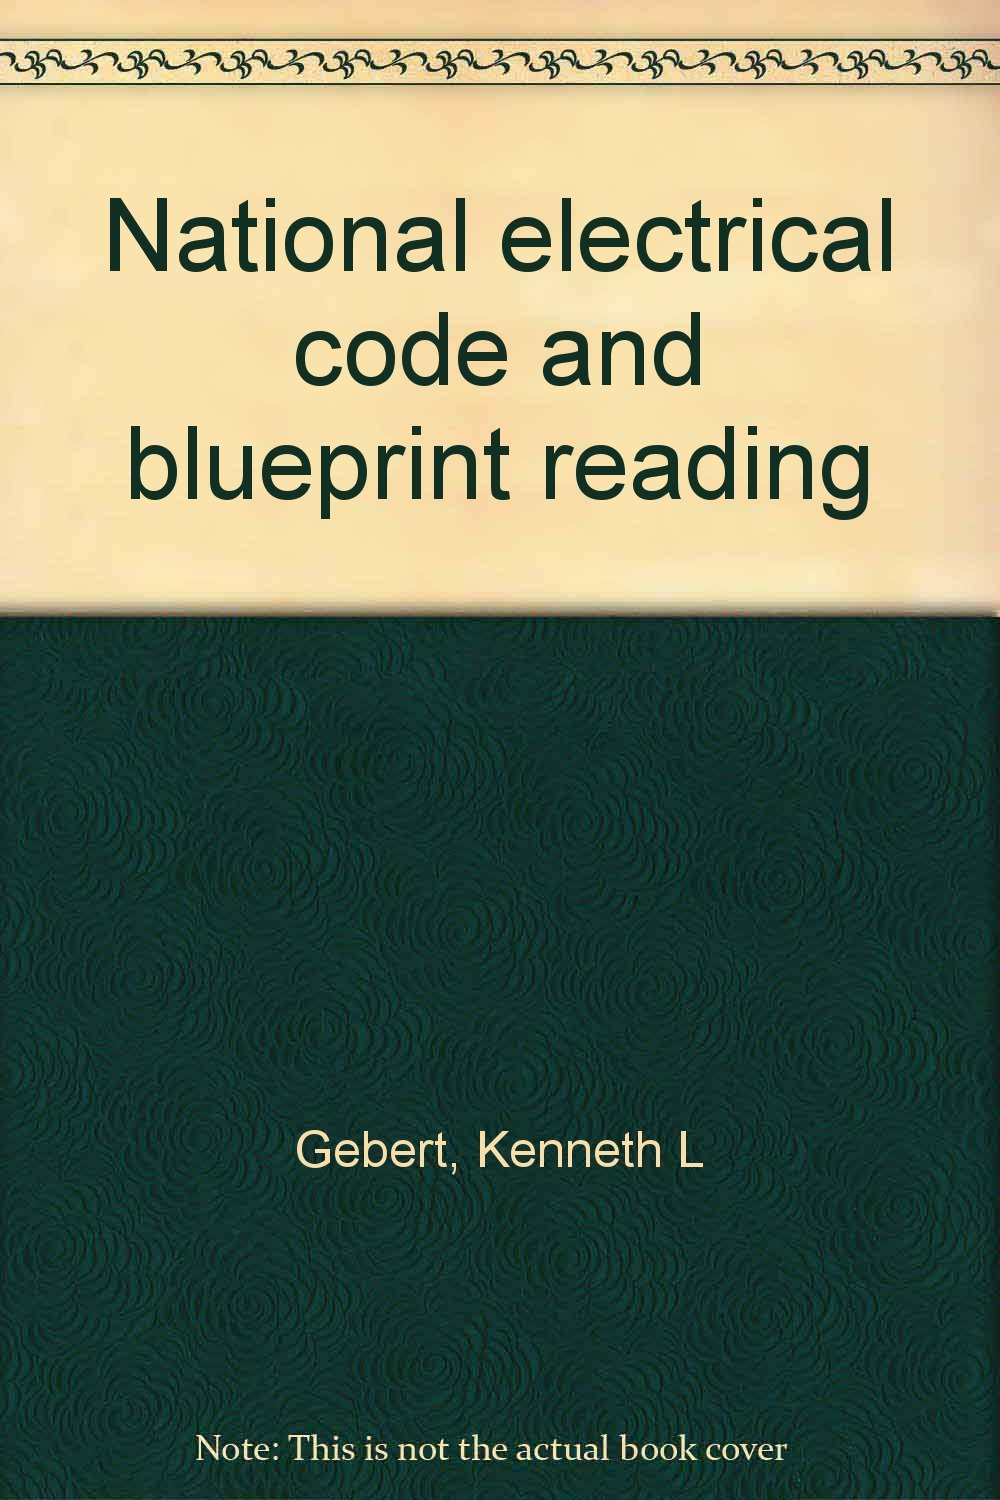 National electrical code and blueprint reading kenneth l gebert national electrical code and blueprint reading kenneth l gebert 9780826915429 amazon books malvernweather Gallery